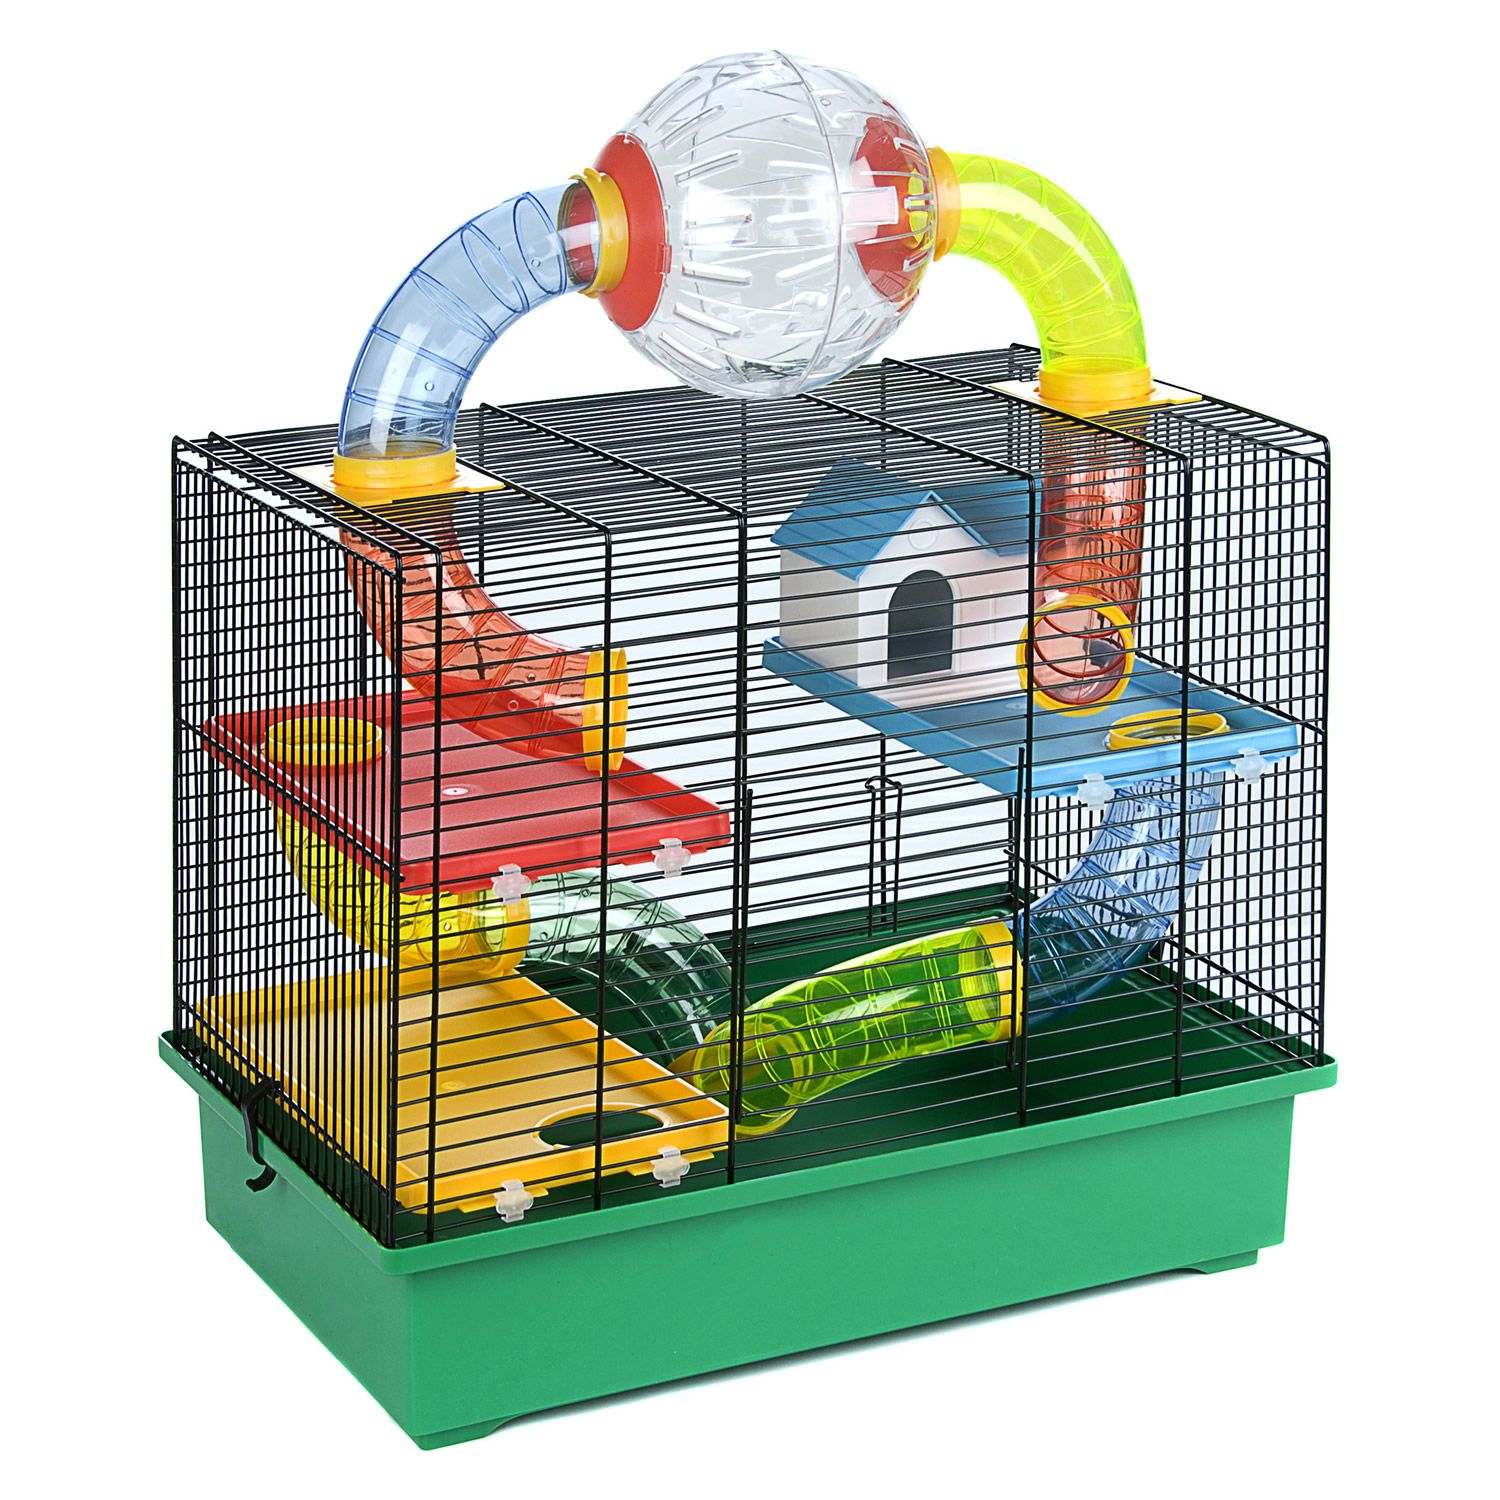 Oscar 2 Hamster Cage Cagesworld Hamster Cage Hamster Life Hamster Cages